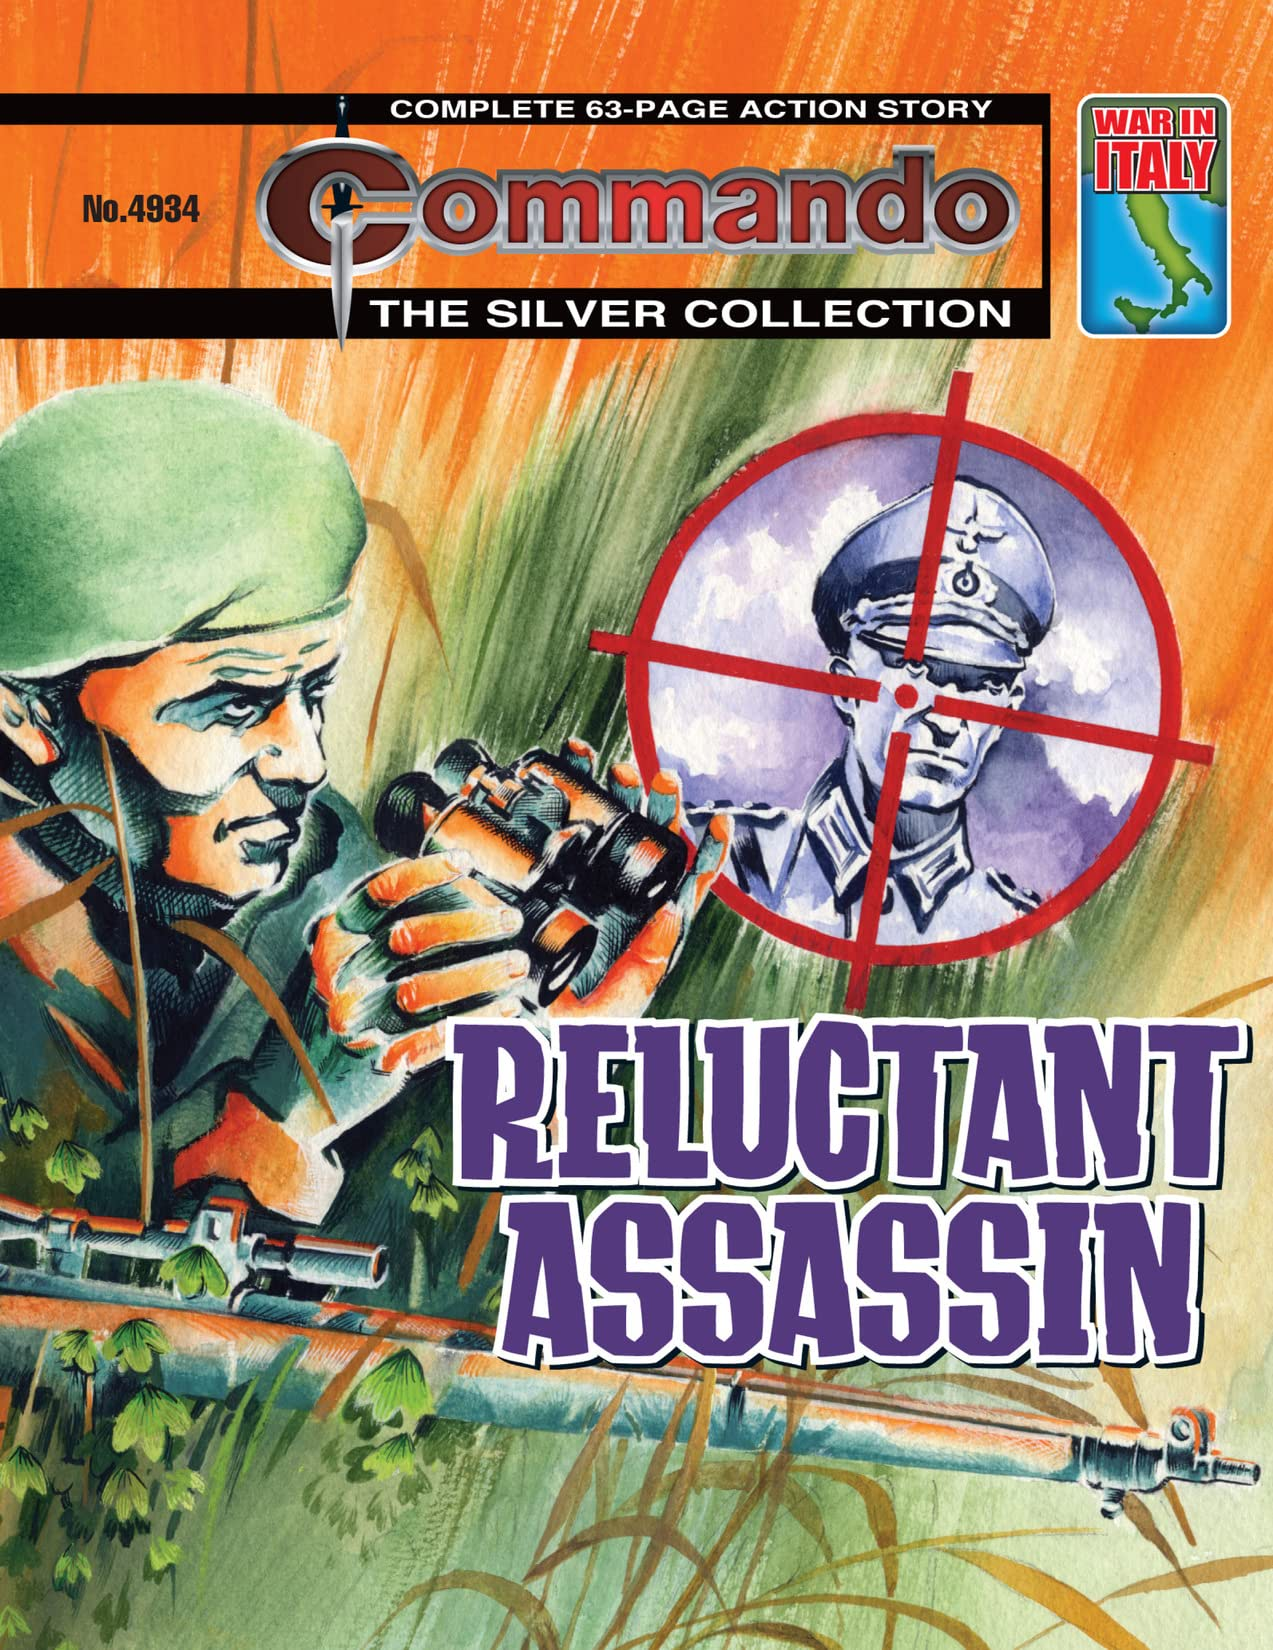 Commando #4934: Reluctant Assassin